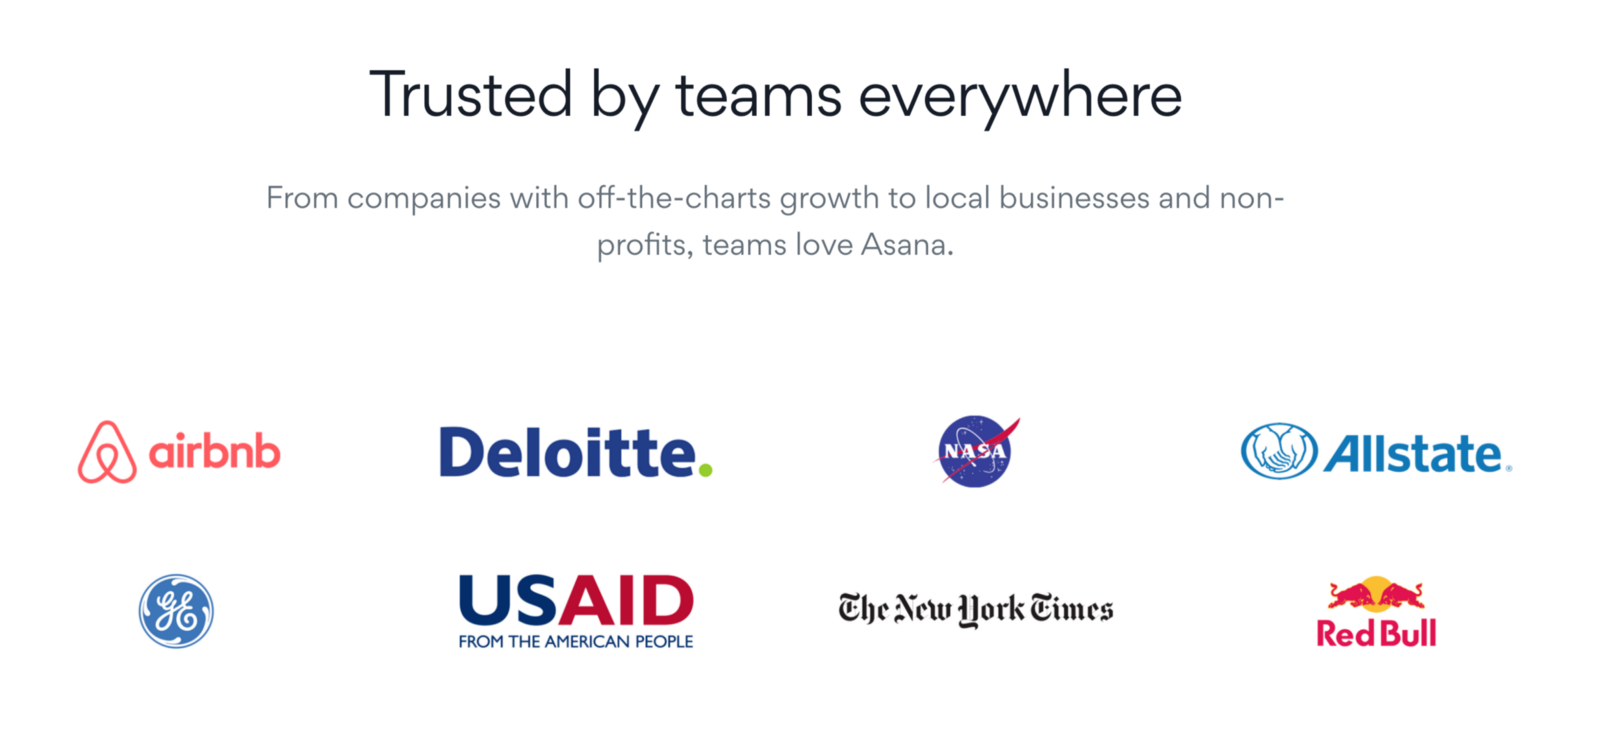 Asana Looks To Have A Pretty Broad Customer Base Do Your Competitors Logos Seem Be Specific An Industry Or Region